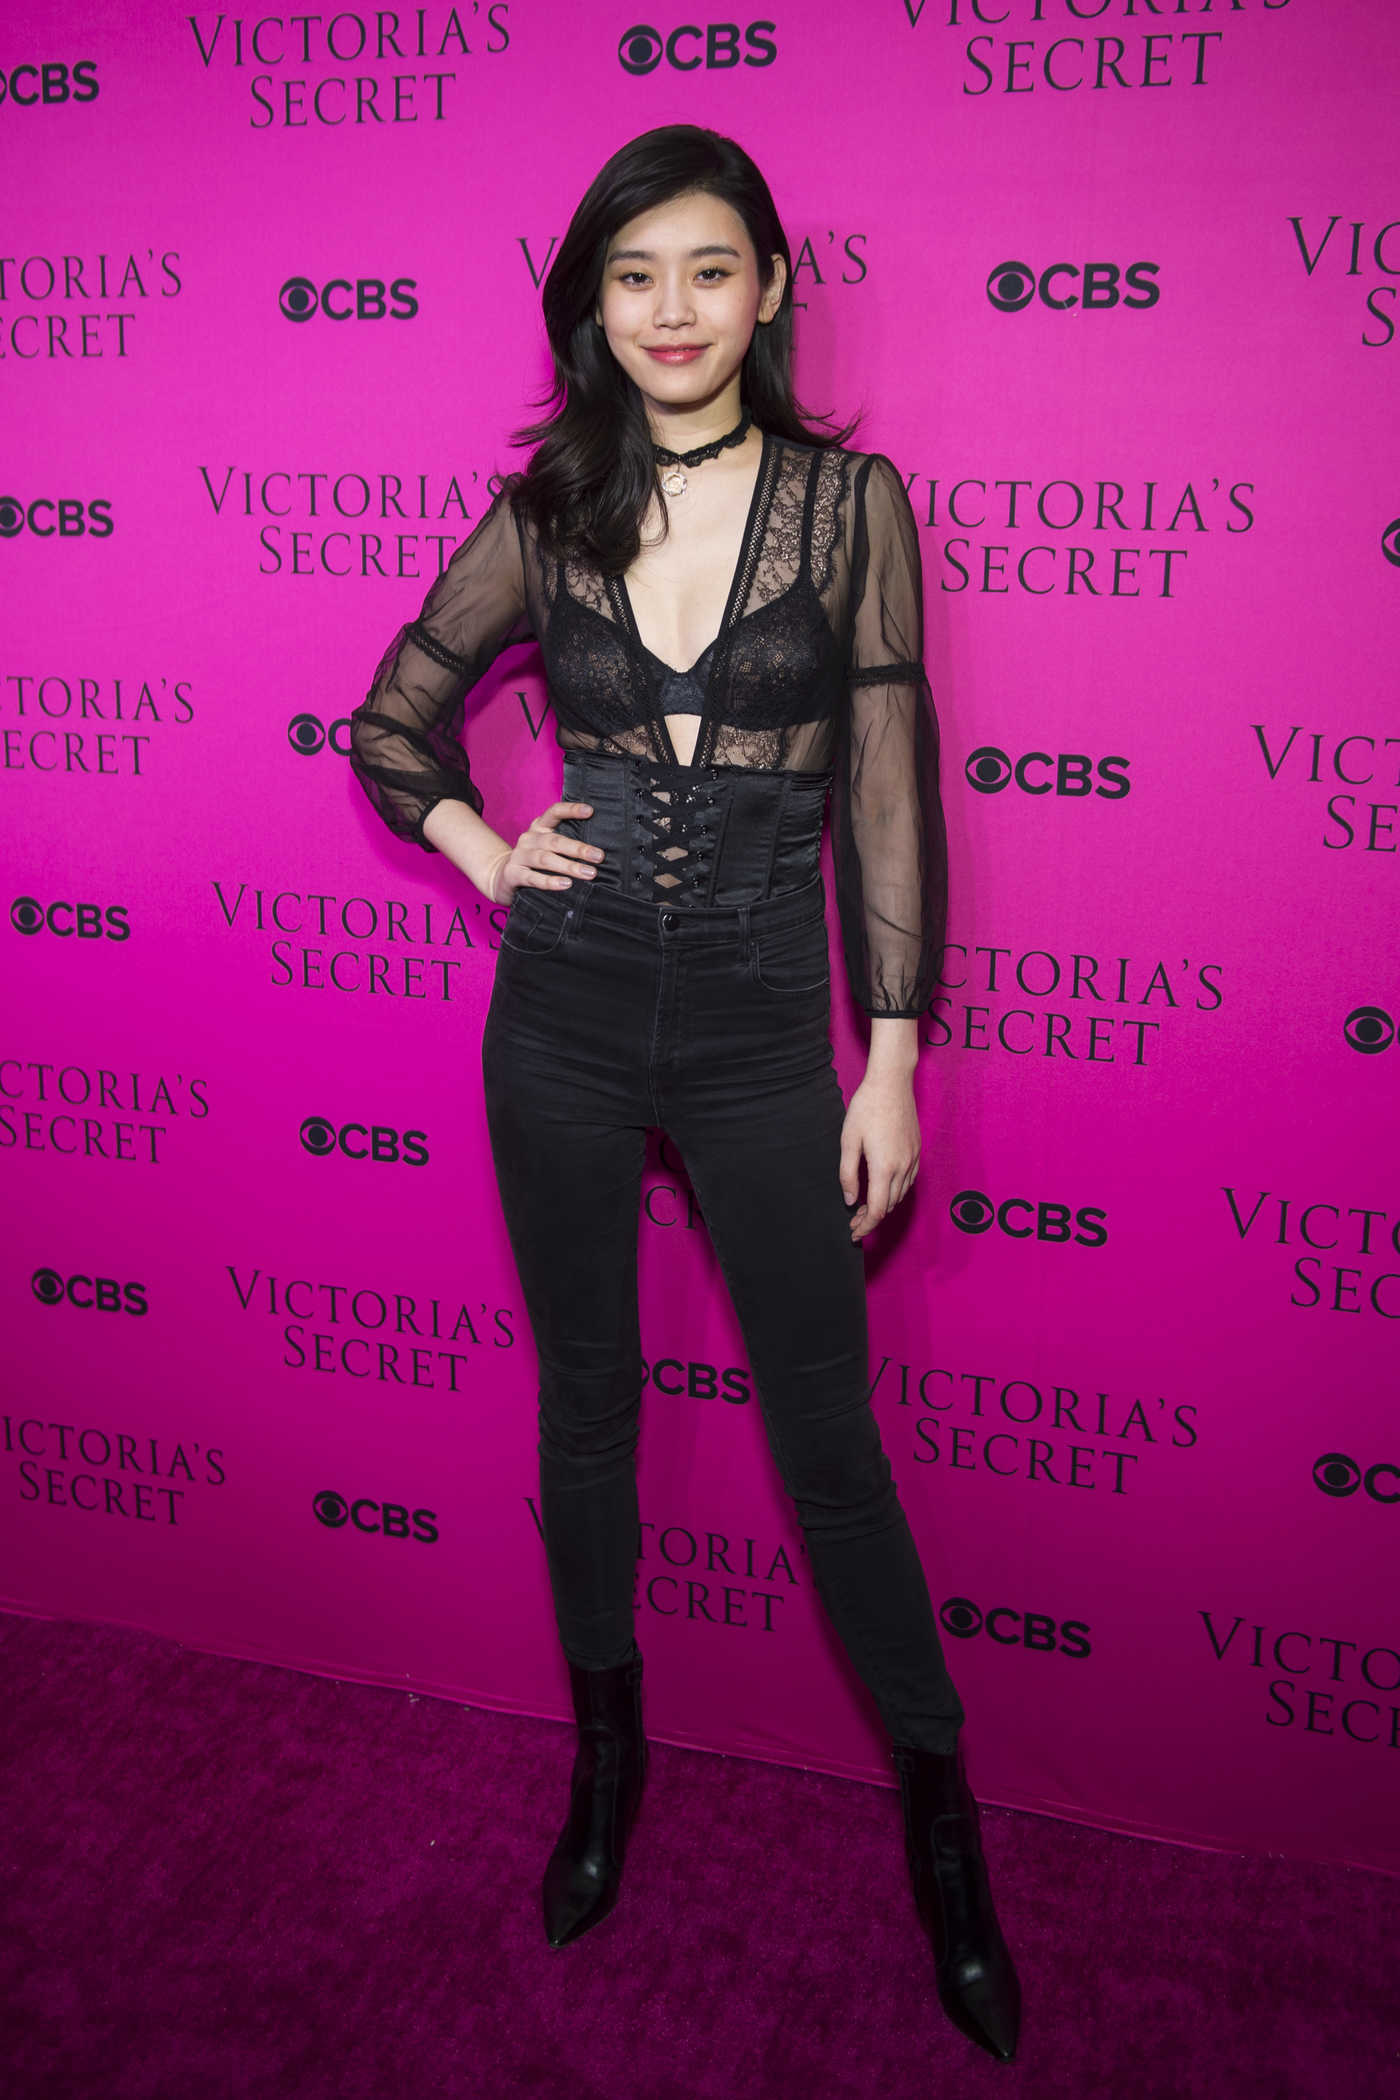 Ming Xi at 2017 Victoria's Secret Fashion Show Viewing Party in New York City 11/28/2017